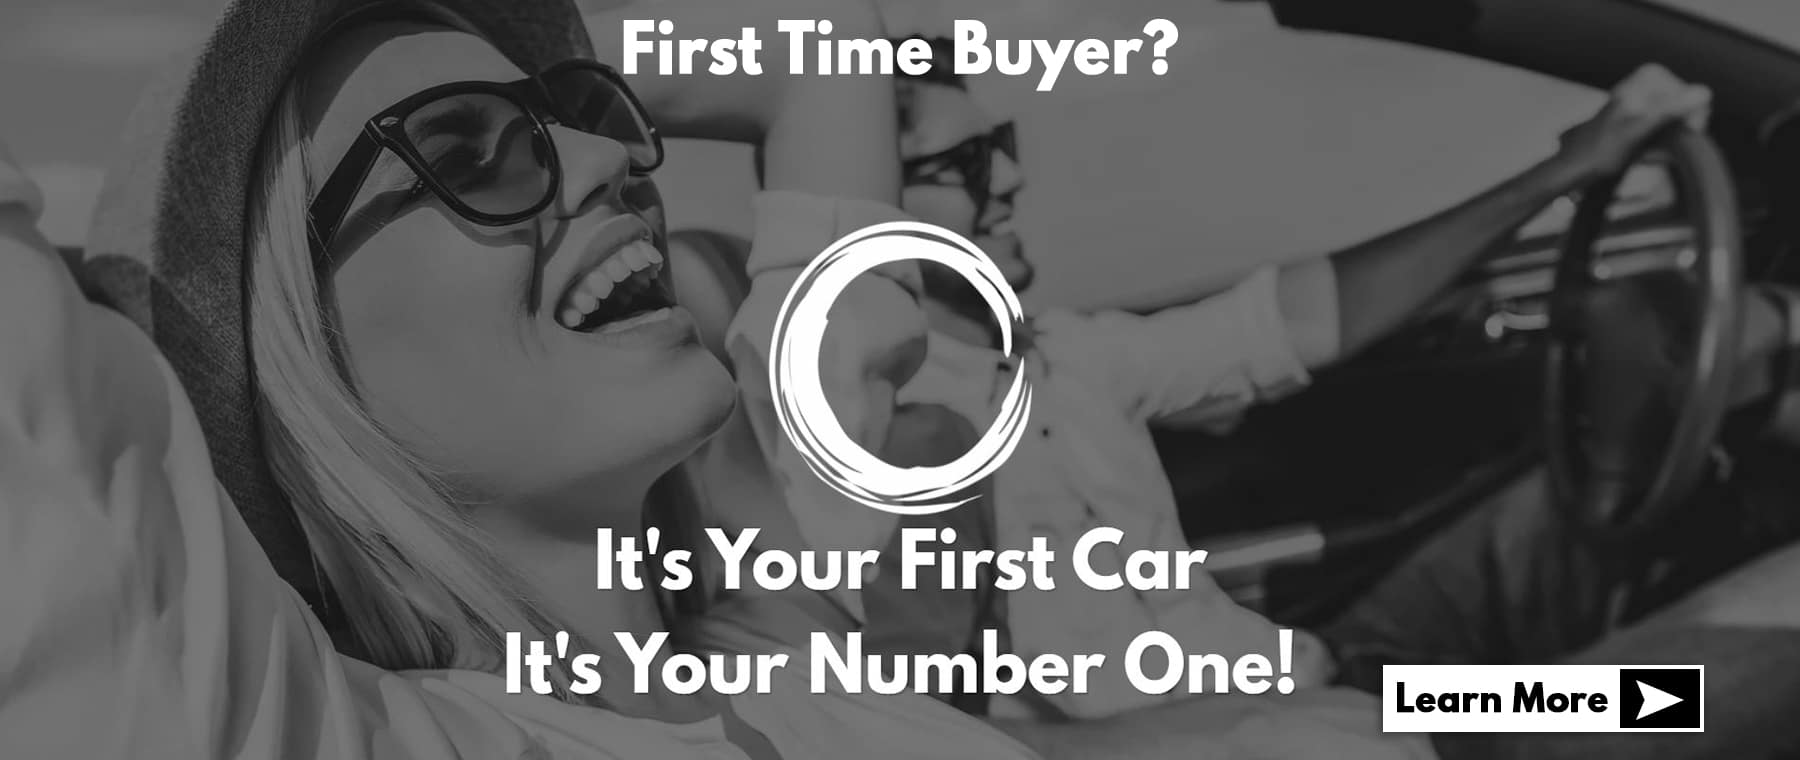 First Time Buyer? It's Your First Car It's Your Number One!